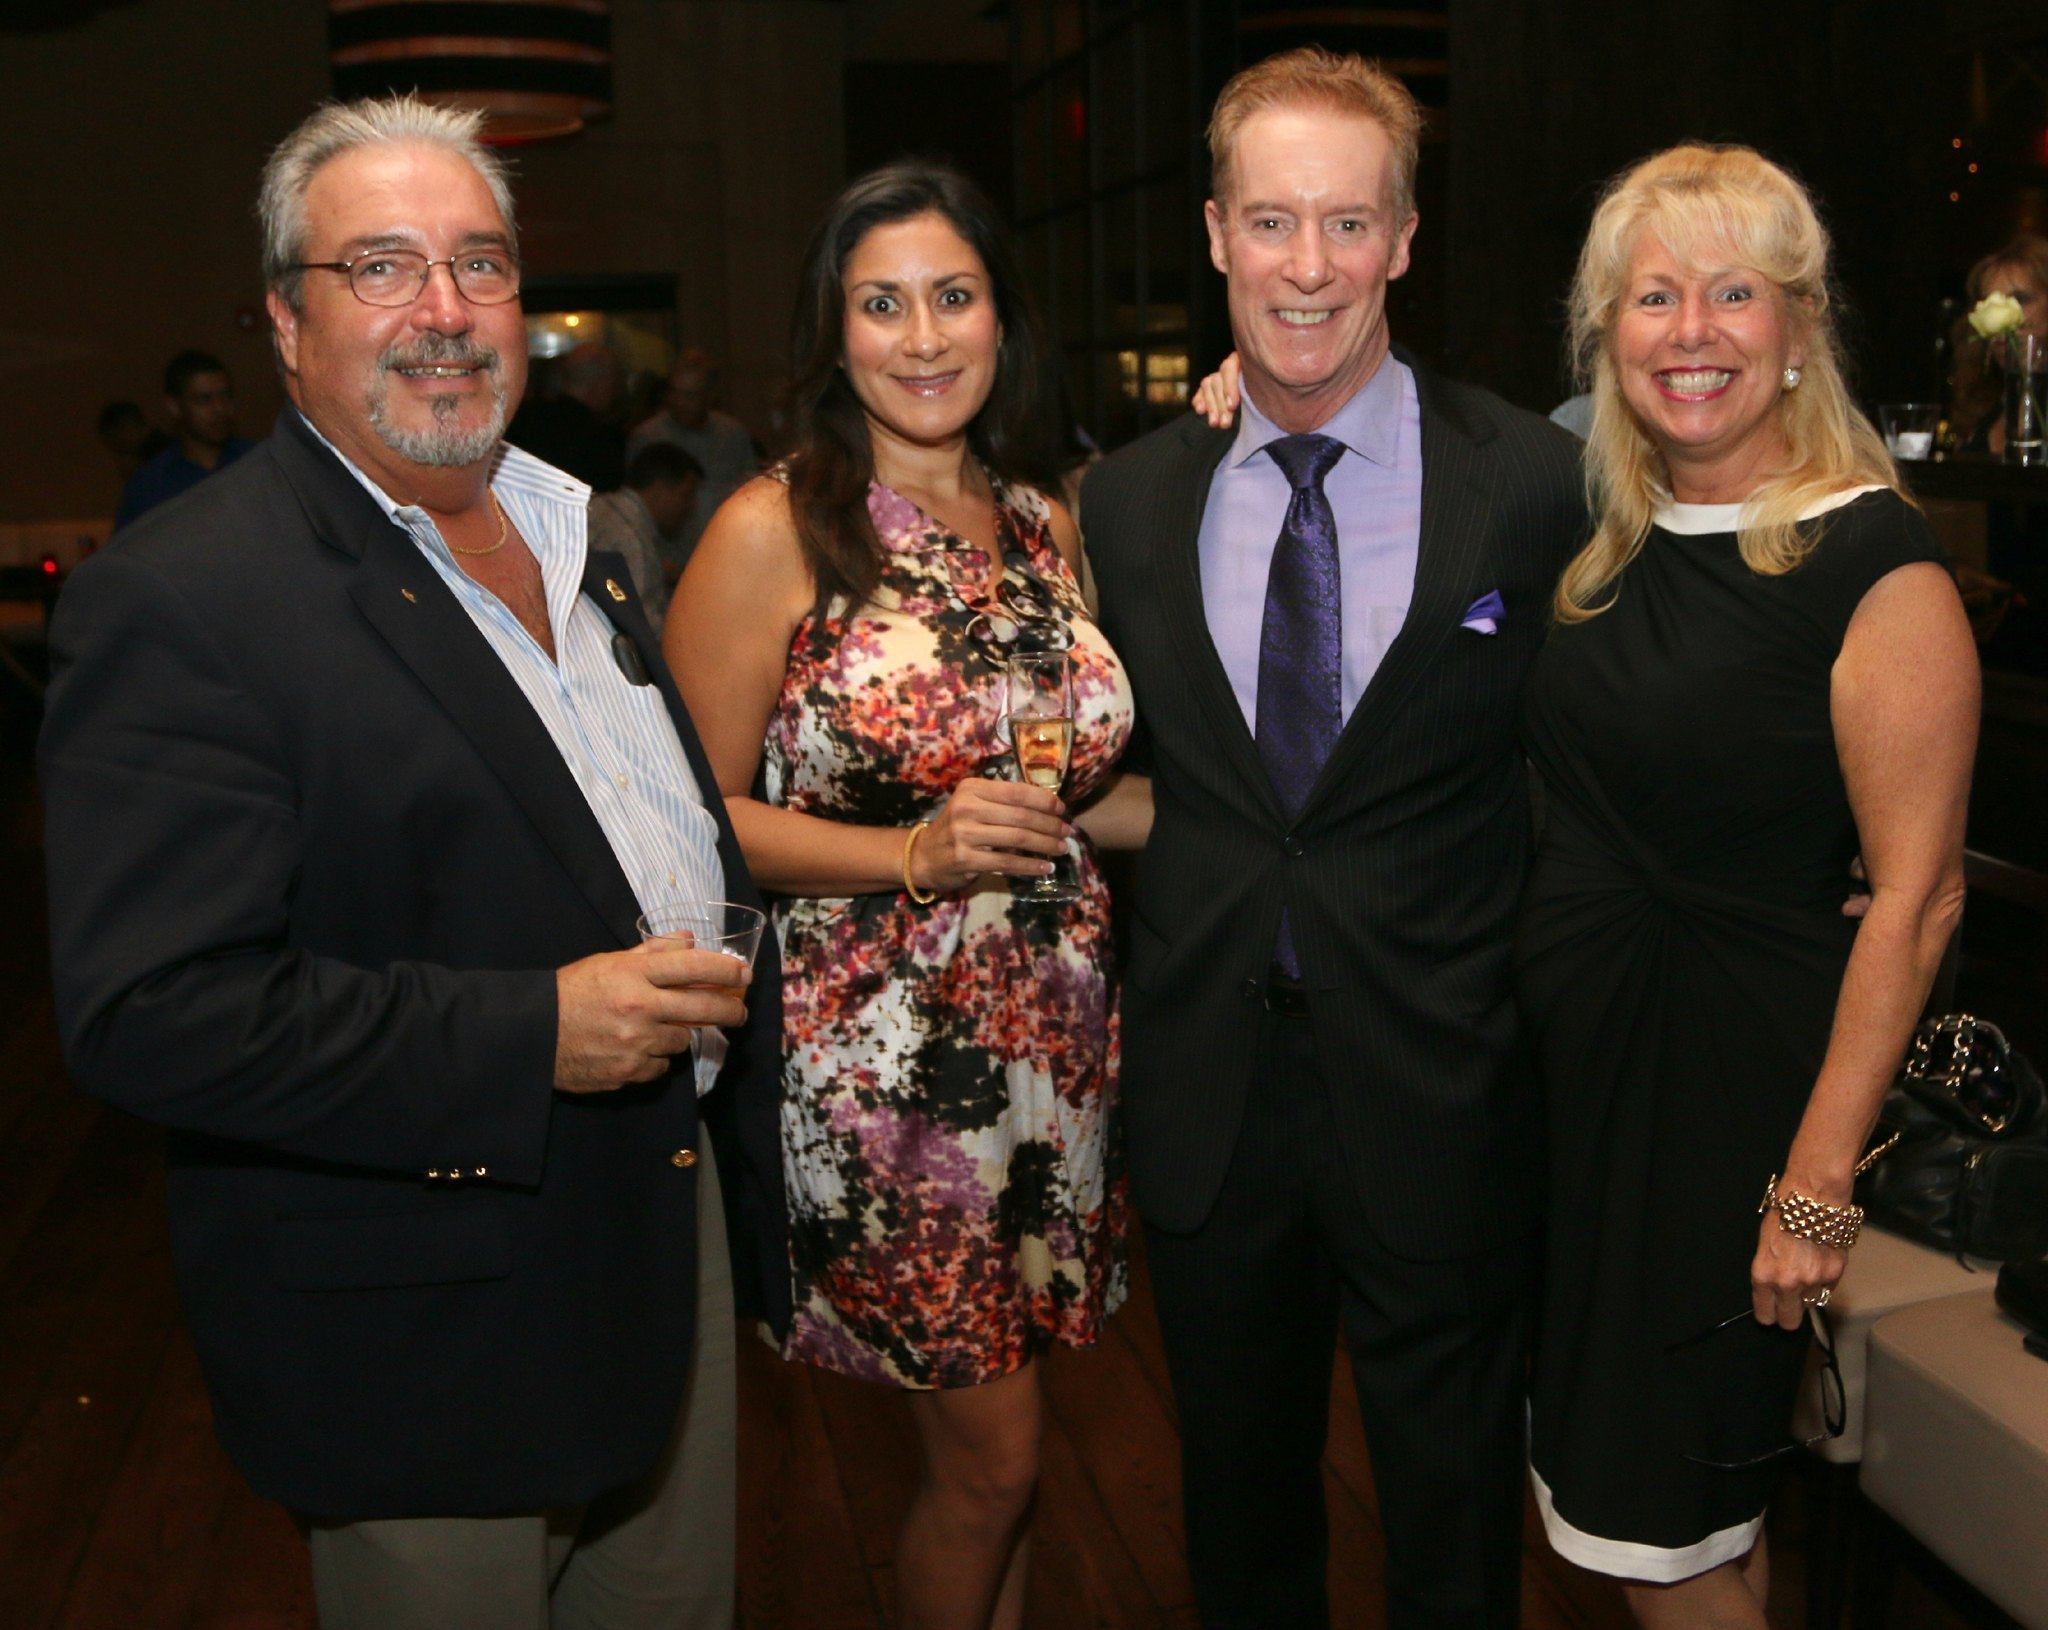 Jazziz Nightlife Grand Opening Party - Ken Kaylor, Julissa Caballero, Chip Benton and Susan Kaplan